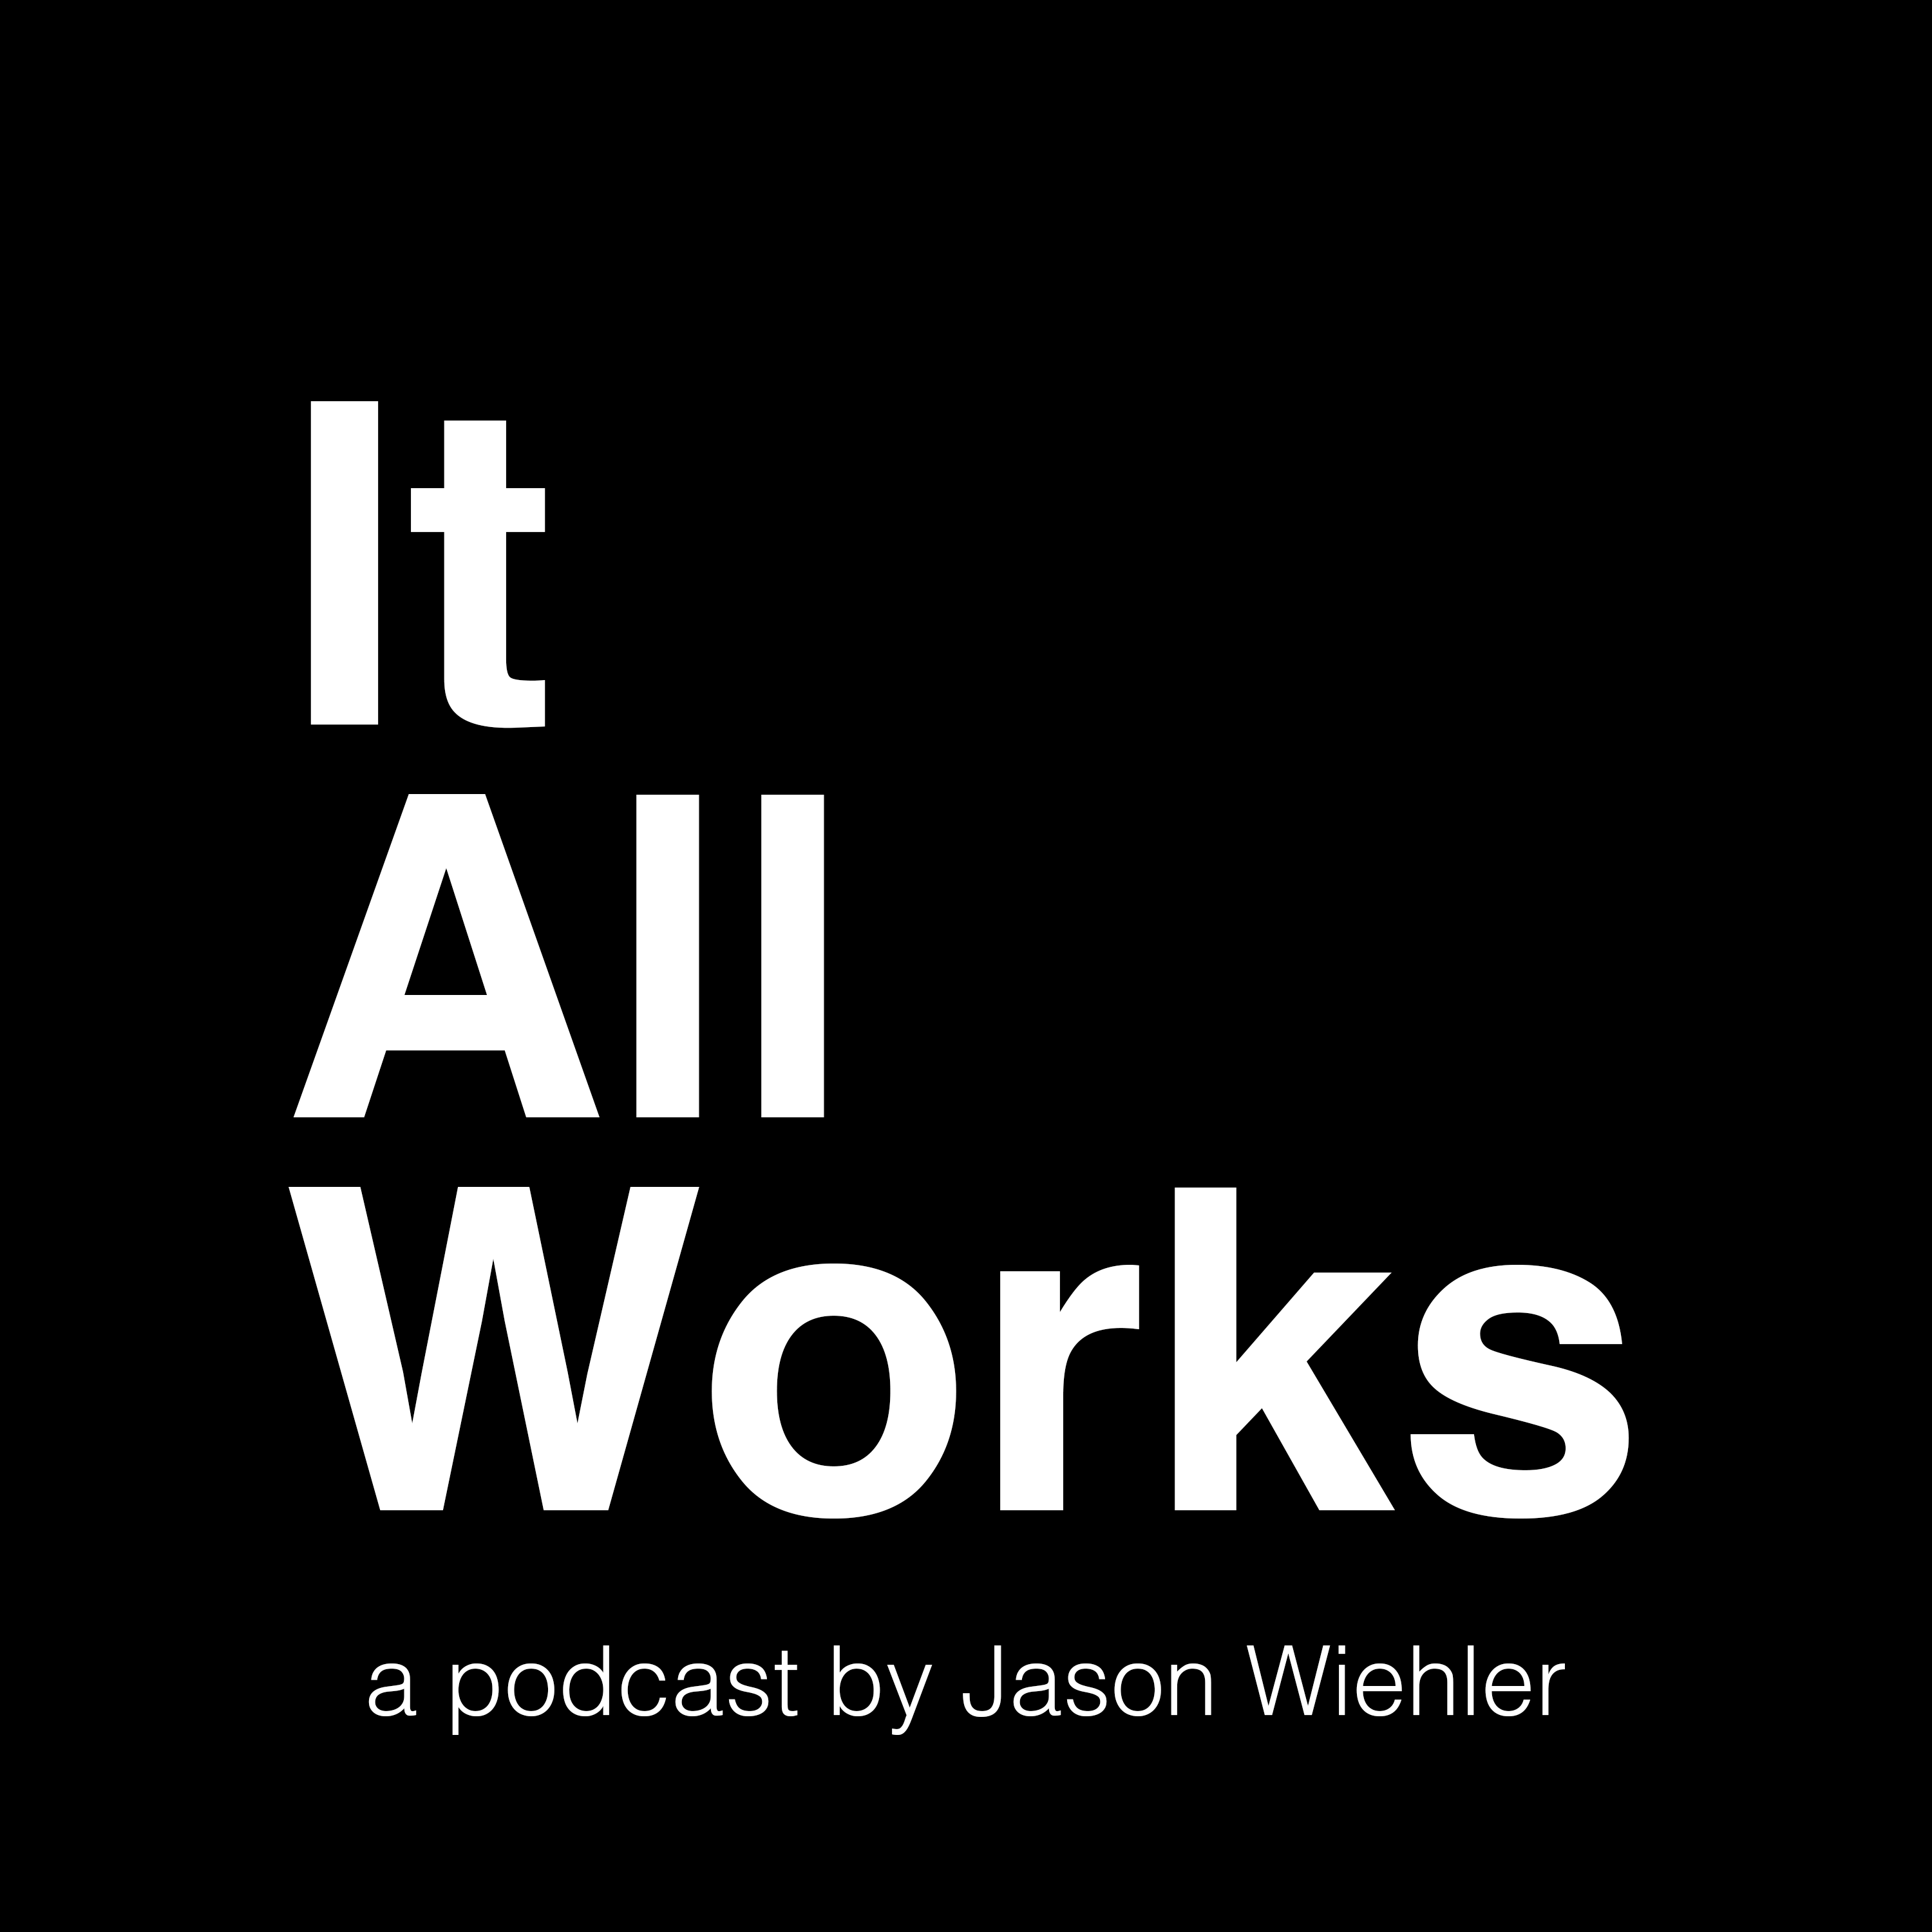 Artwork for podcast It All Works